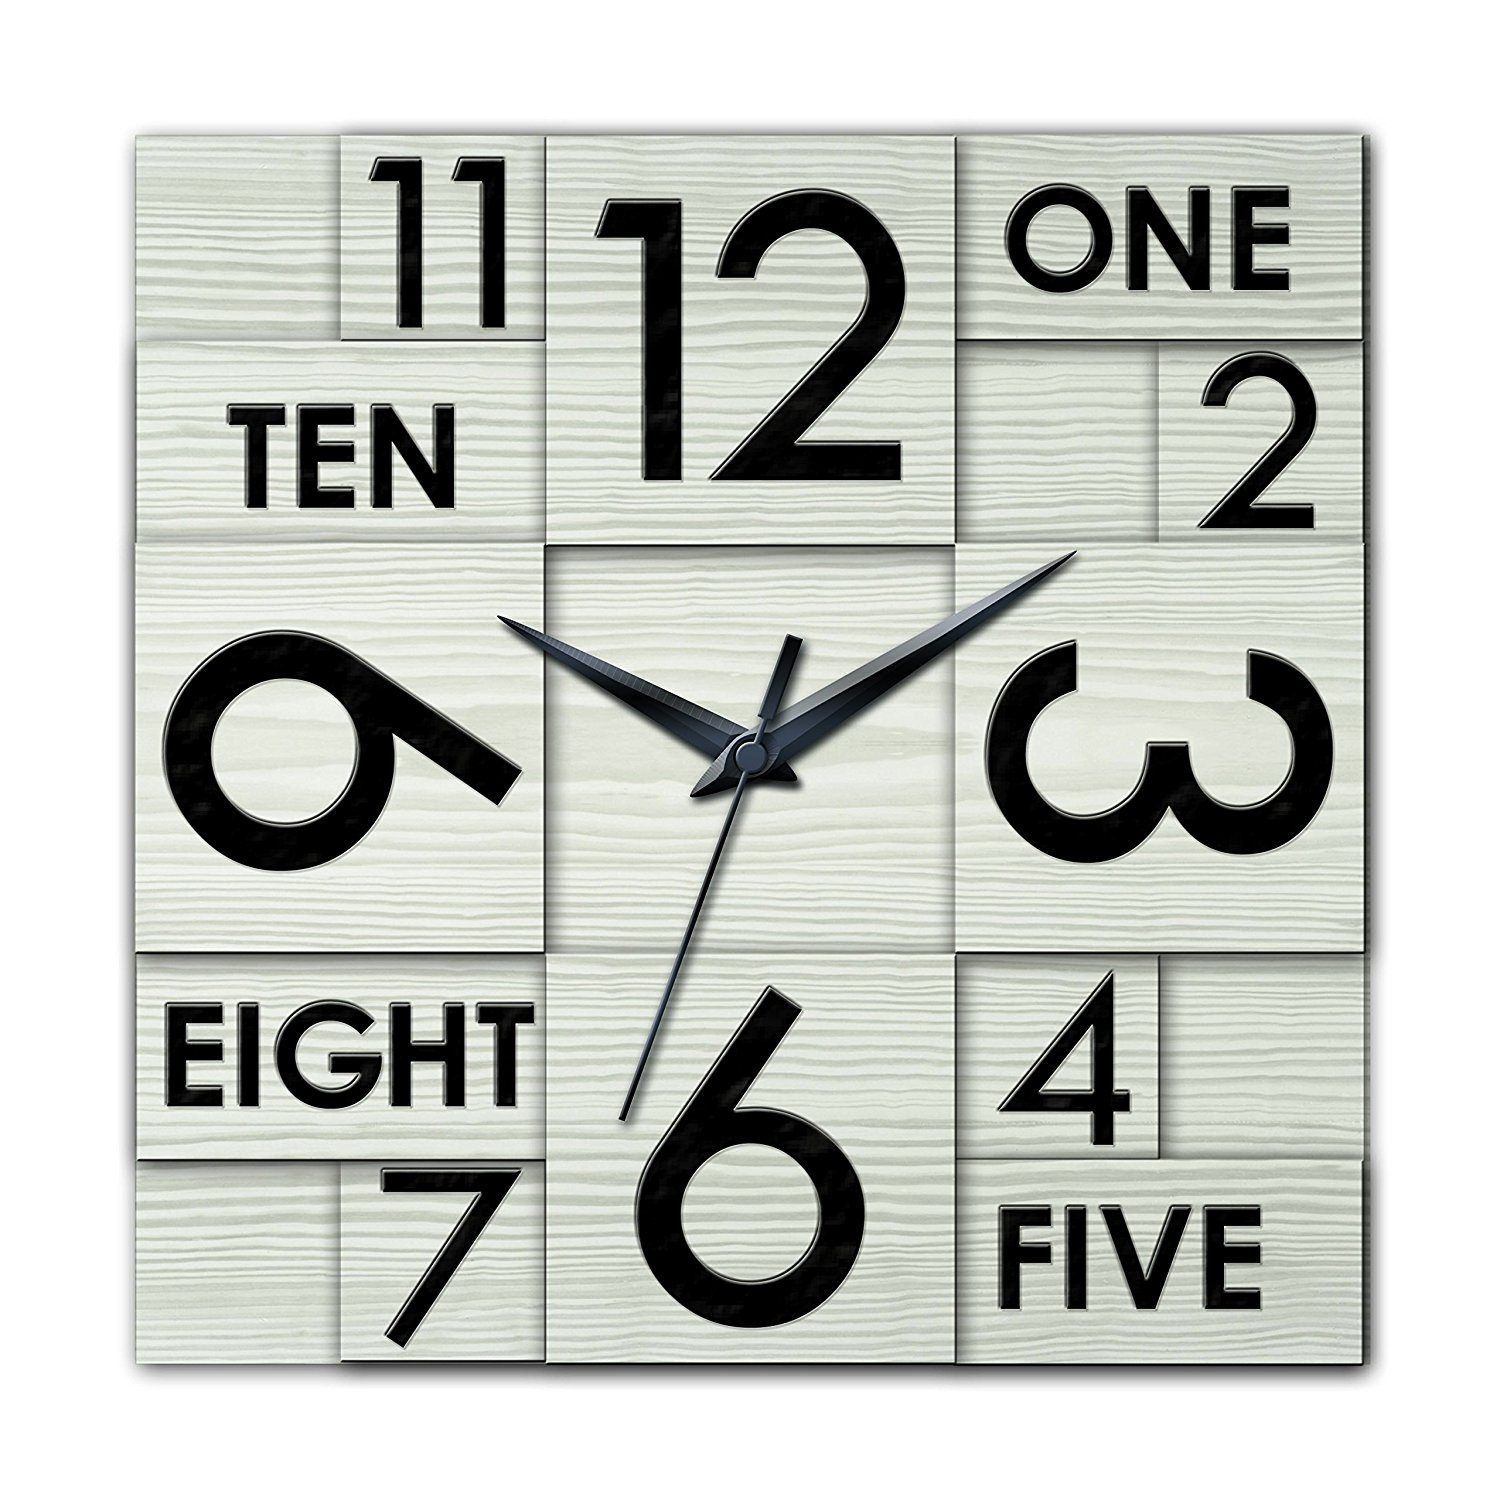 Ashton Sutton HOC022 QA Square Wall Clock, 22-Inch